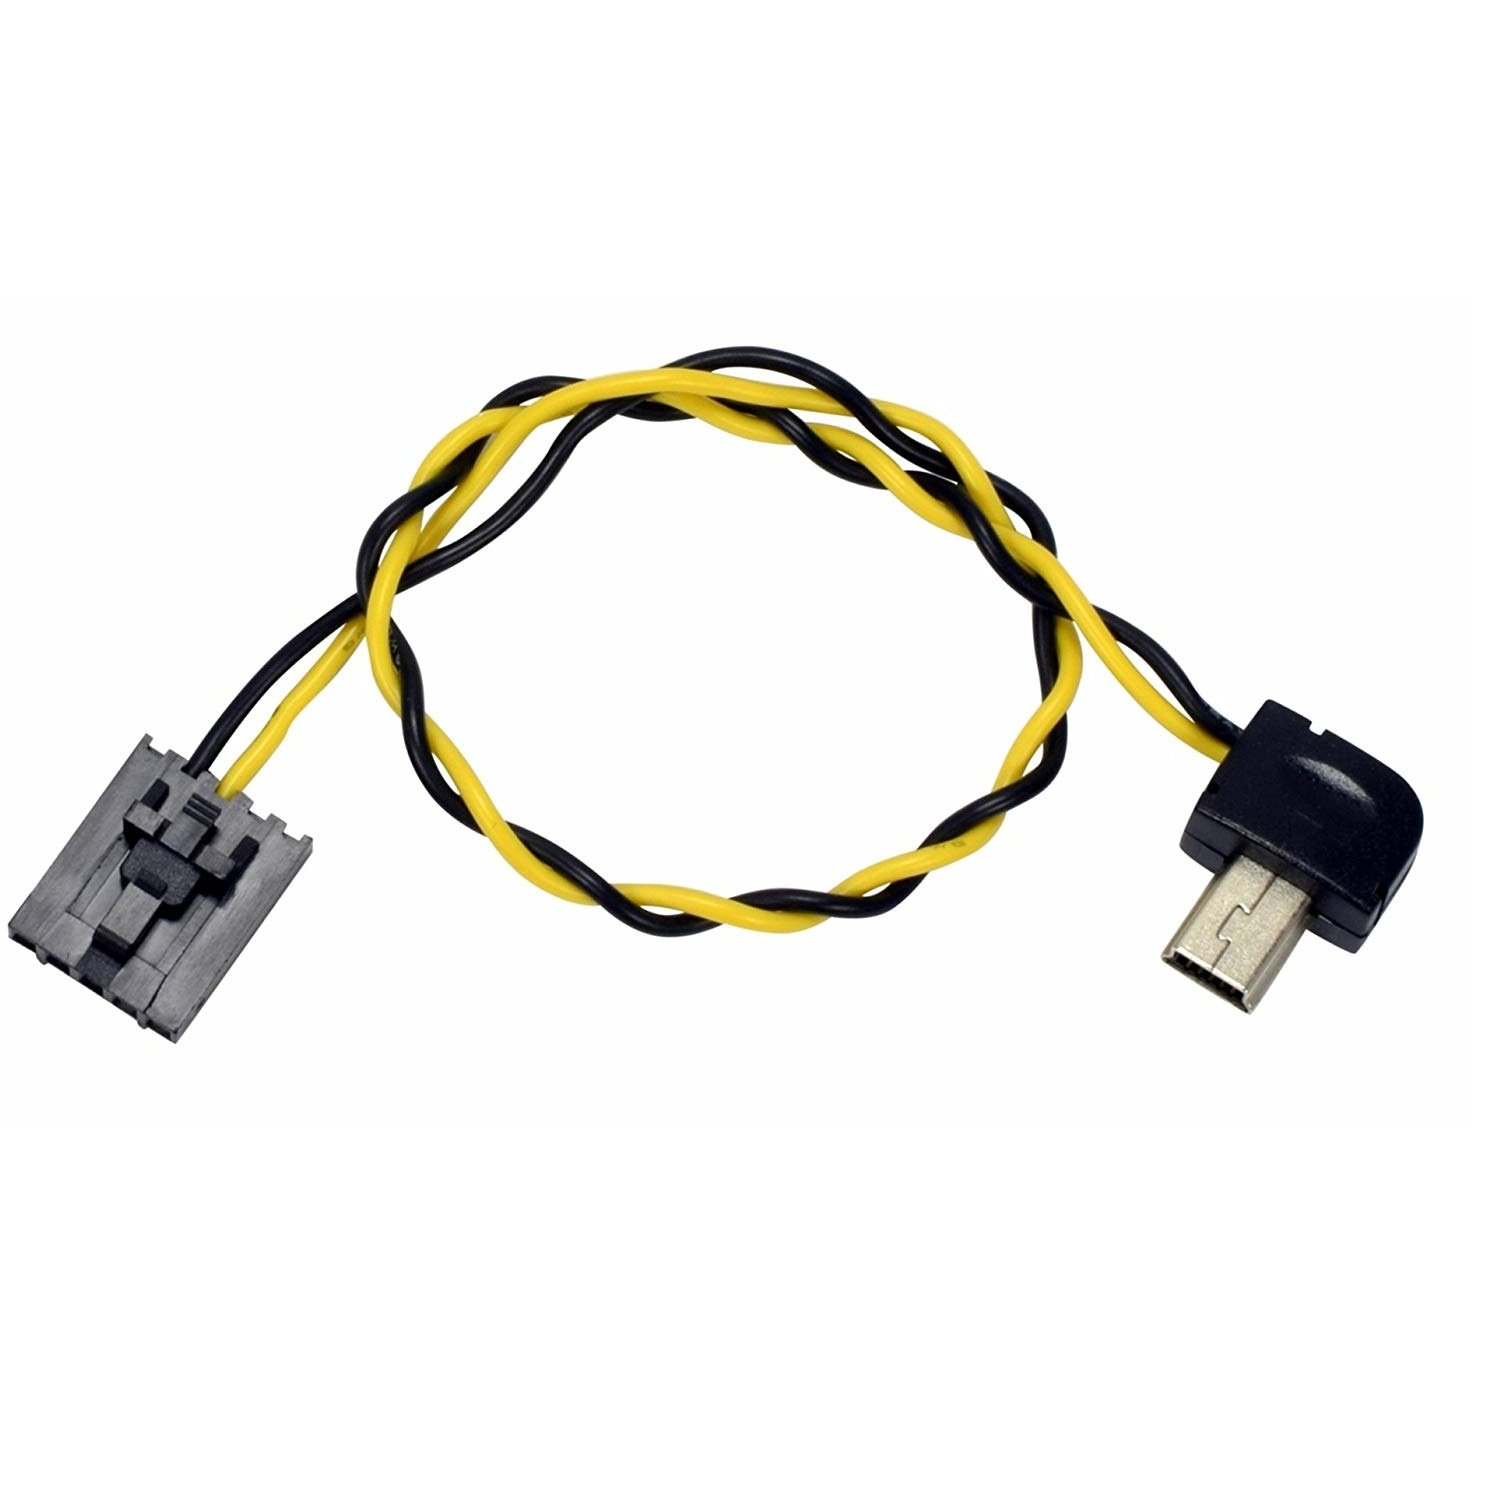 mini usb 90 connector to fpv av output cable for gopro hero 3